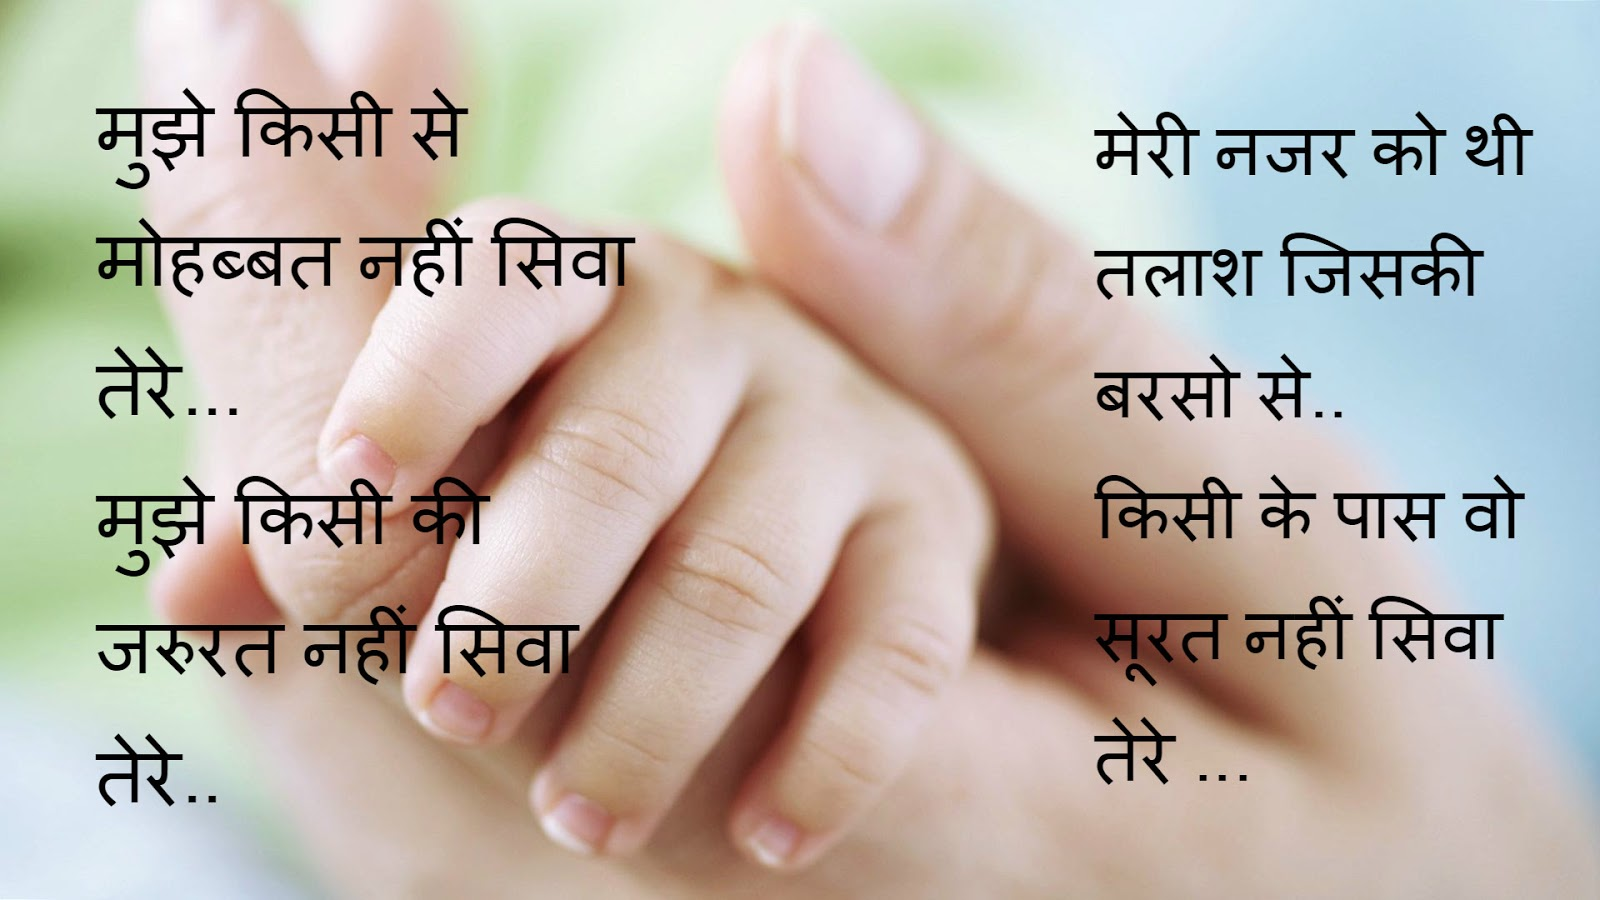 Love Shayari In Hindi Wallpaper Download Love Shayari Hd New